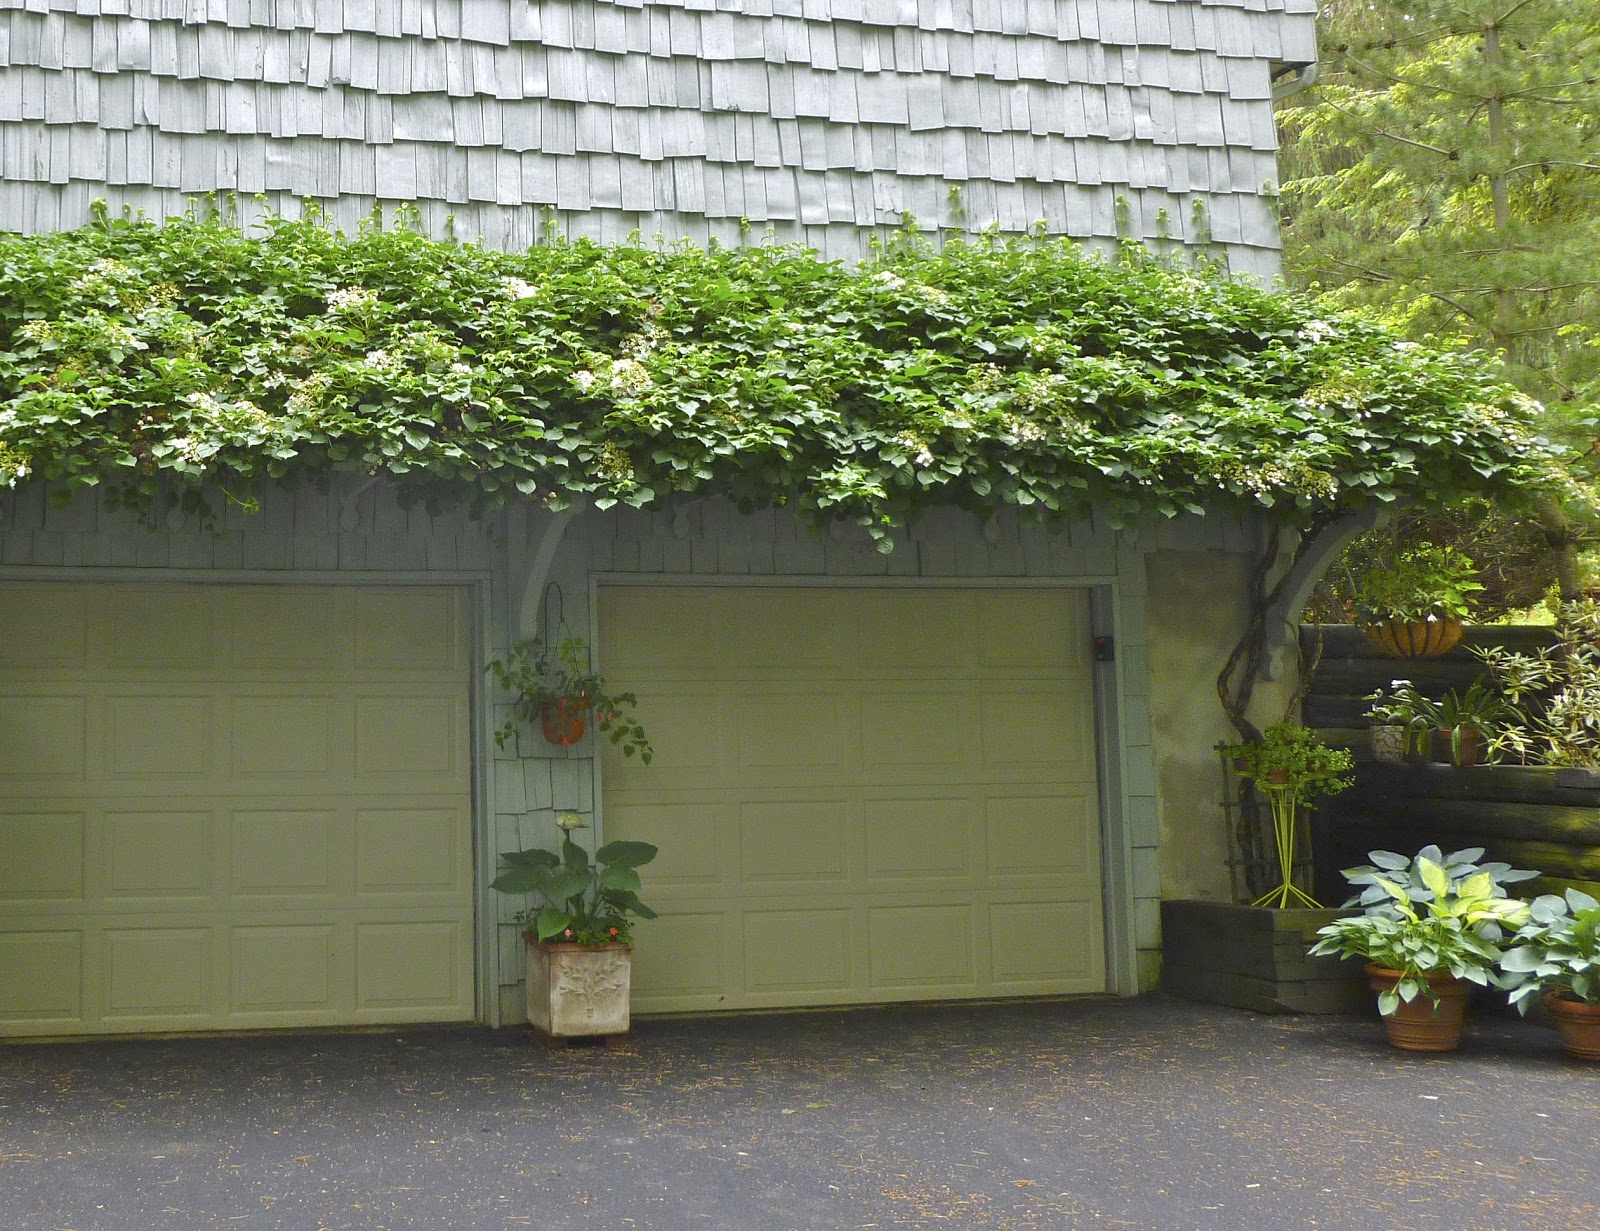 Trellis over garage door - May 5 2013